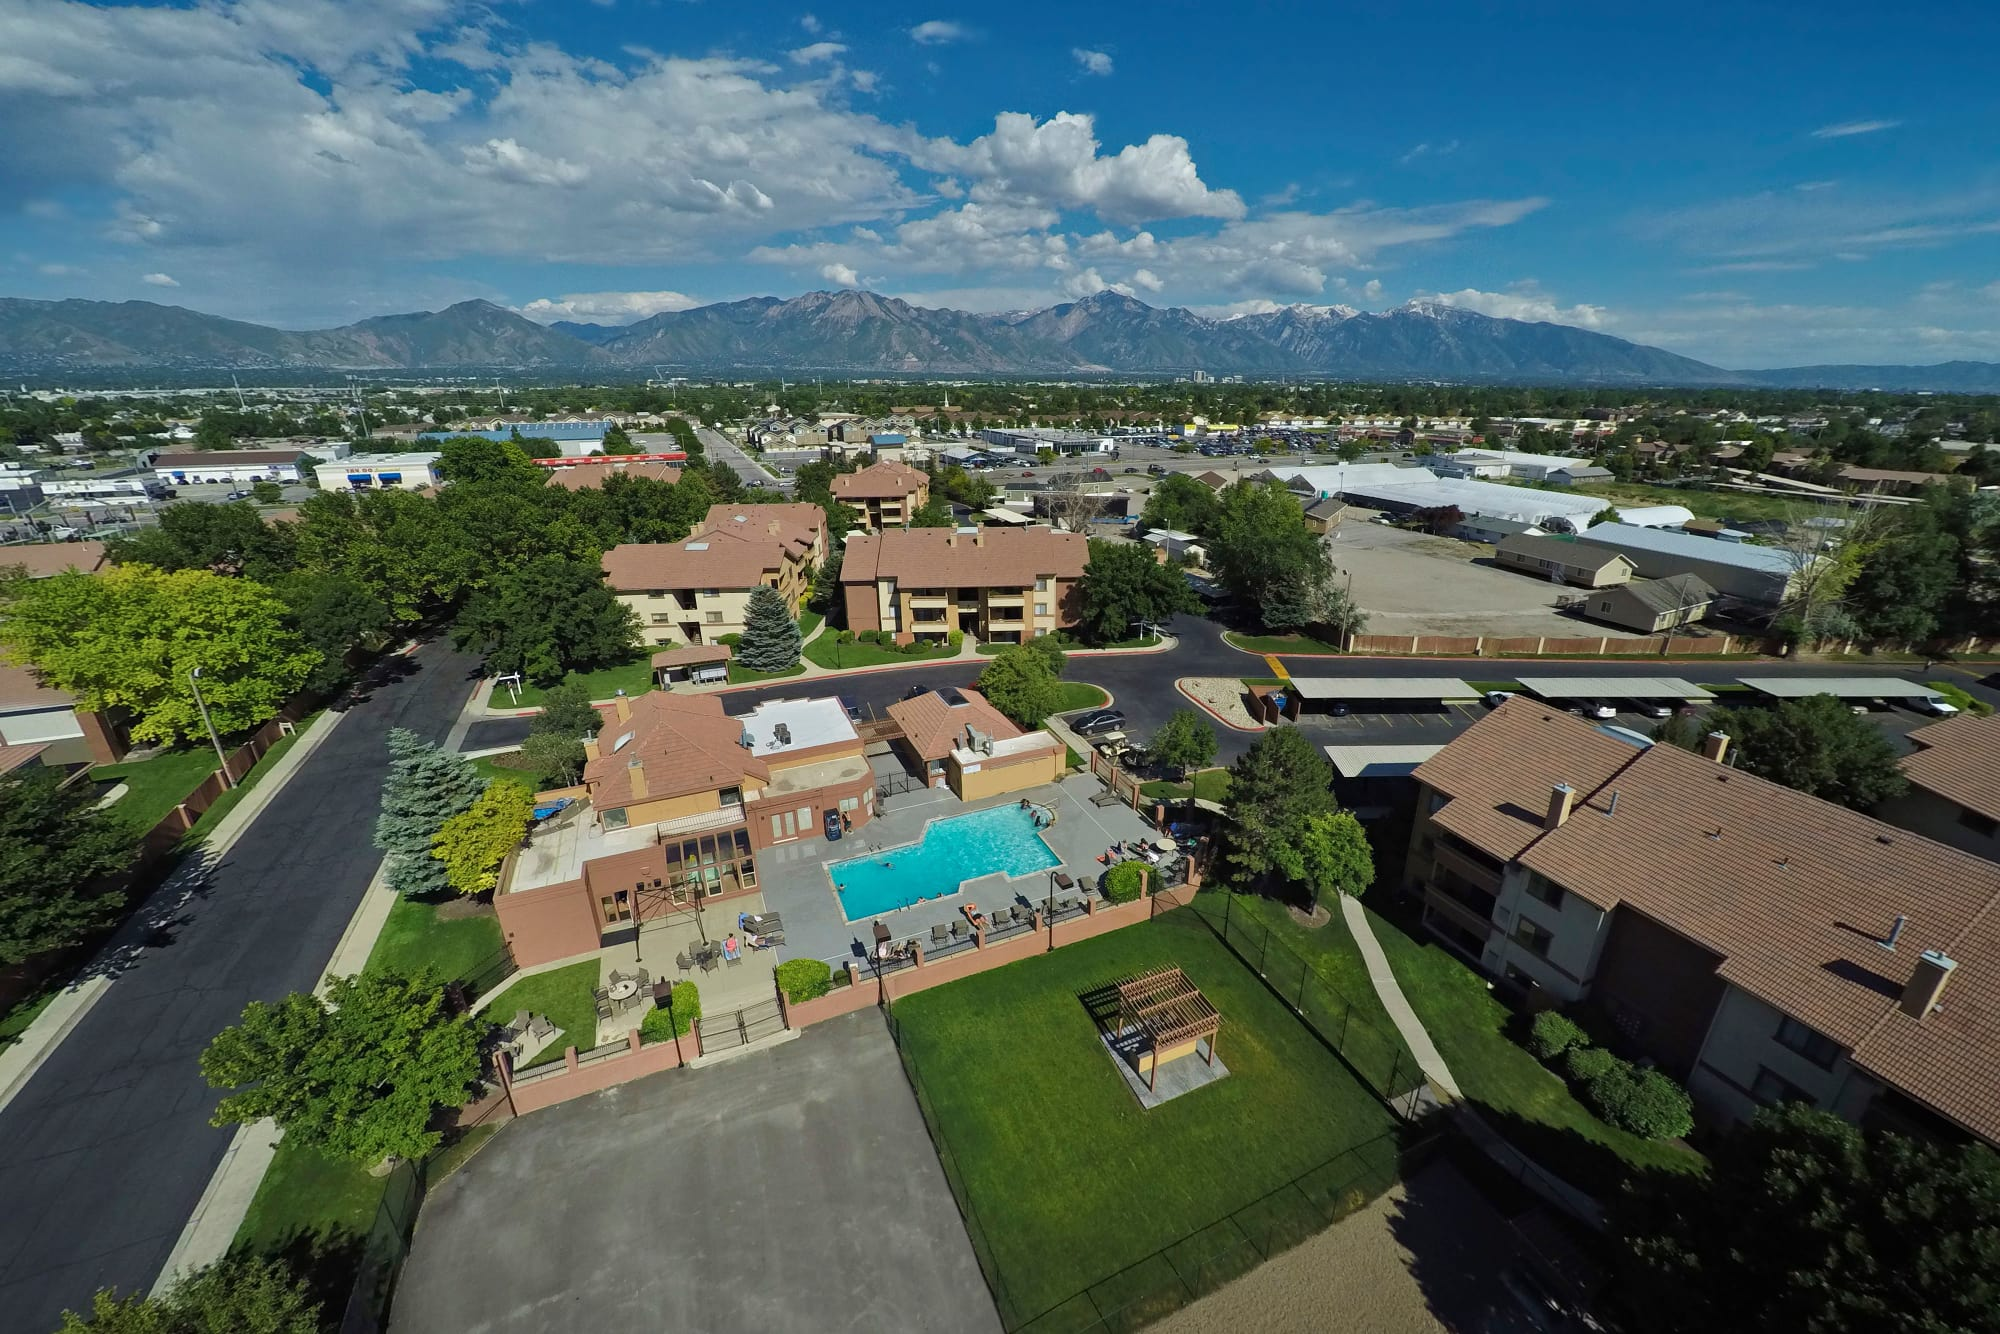 Aerial of Shadowbrook Apartments's buildings